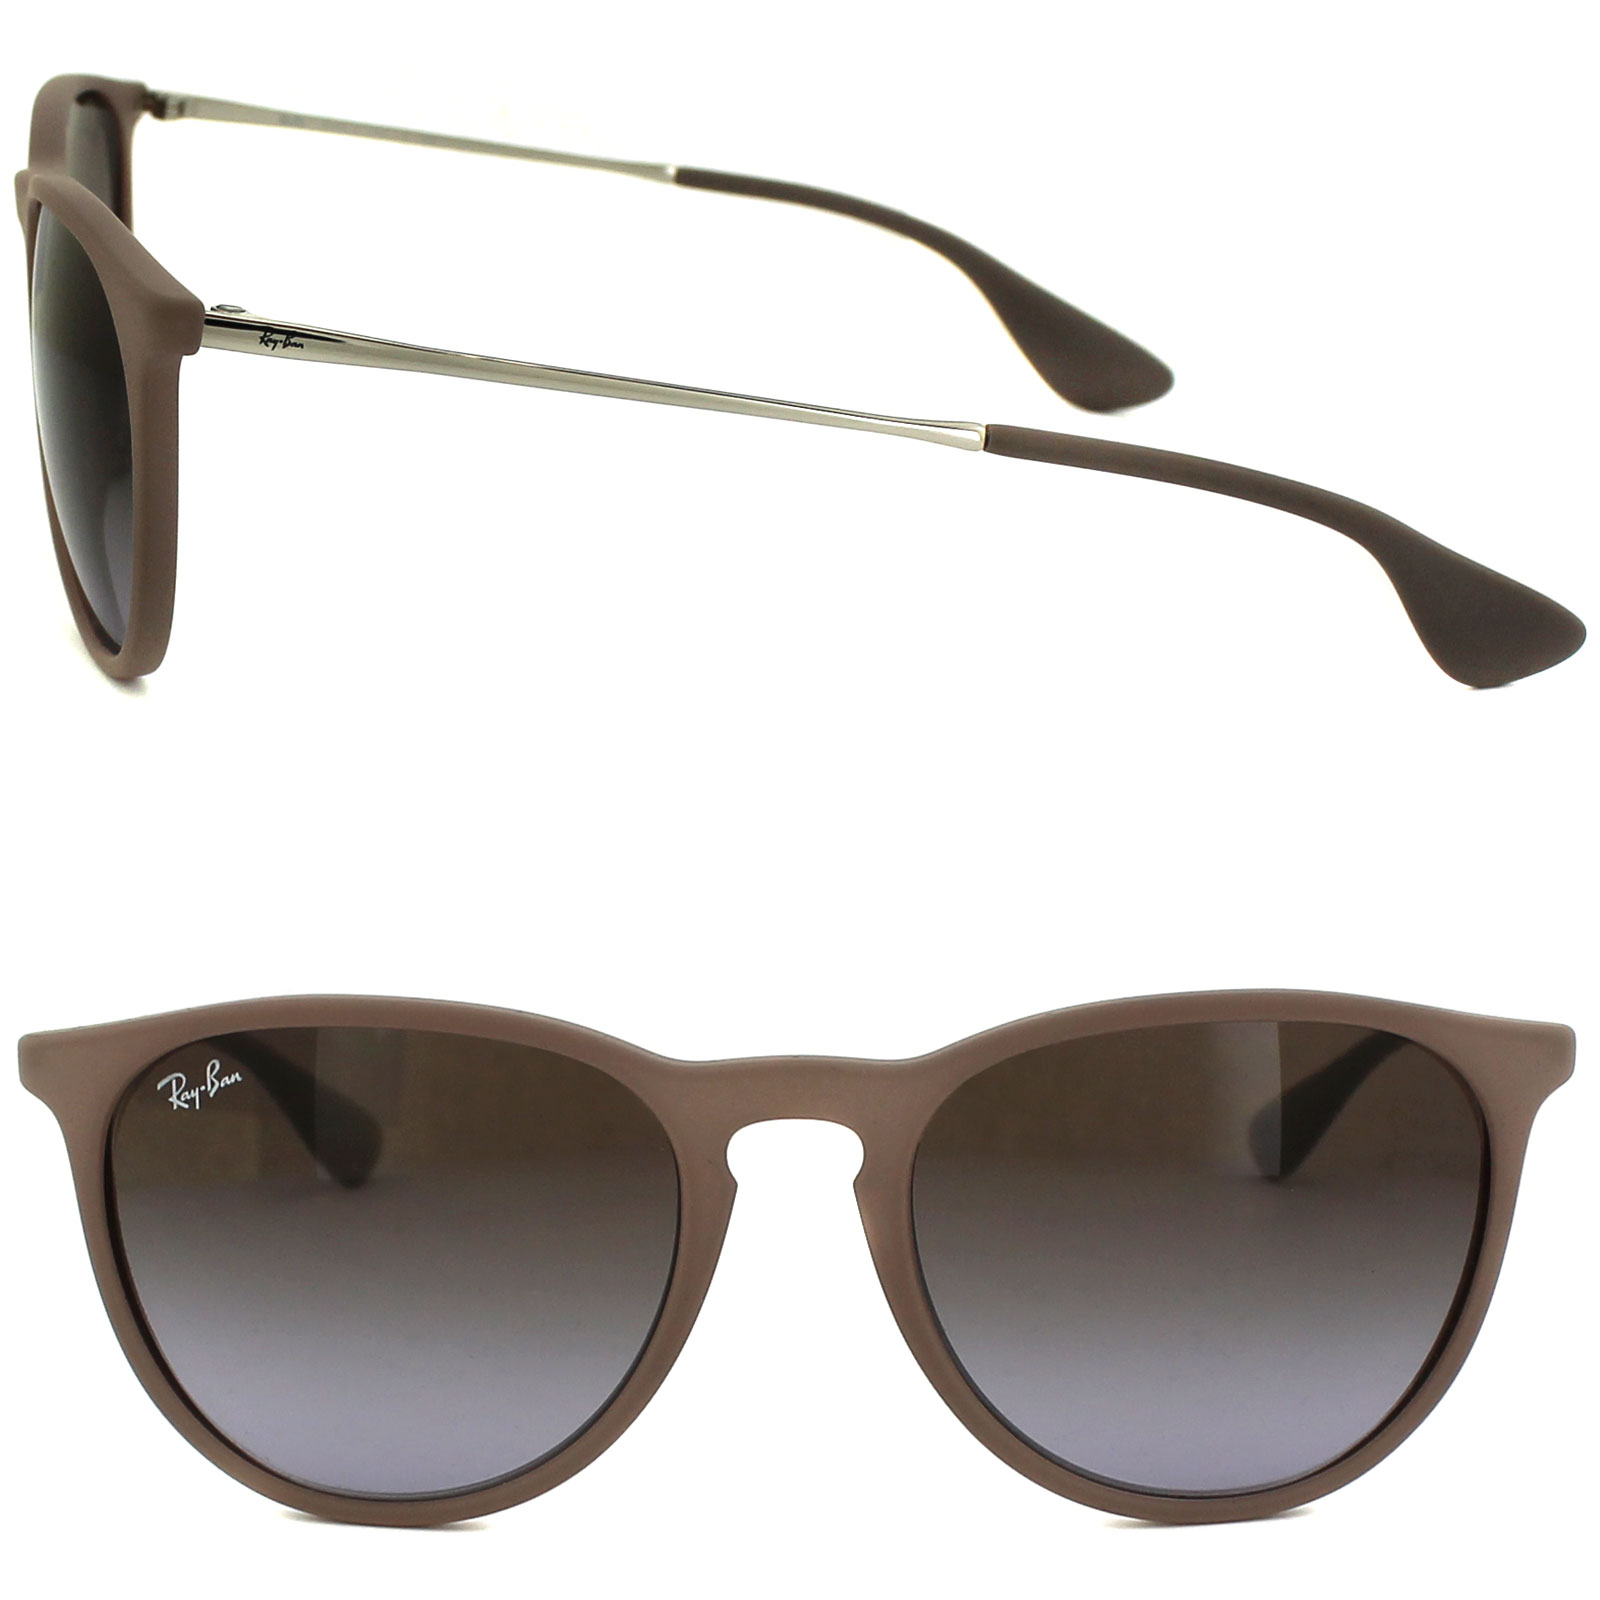 Ray Ban Sunglasses 4171  ray ban sunglasses 4171 600068 dark rubber sand brown grant